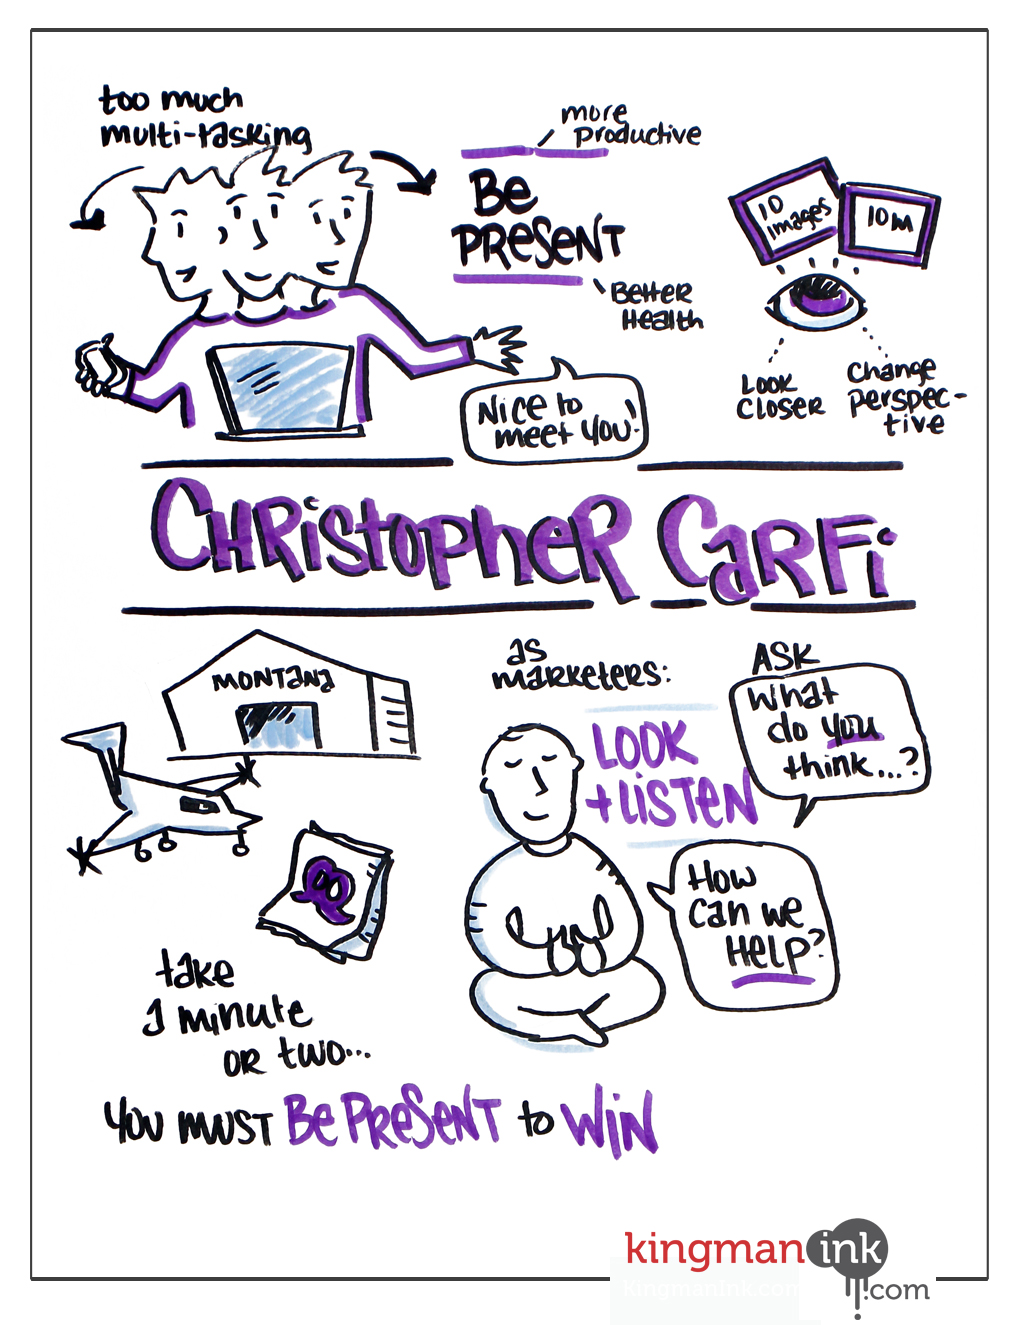 2/28 Christopher Carfi [INBOUND Bold Talk]